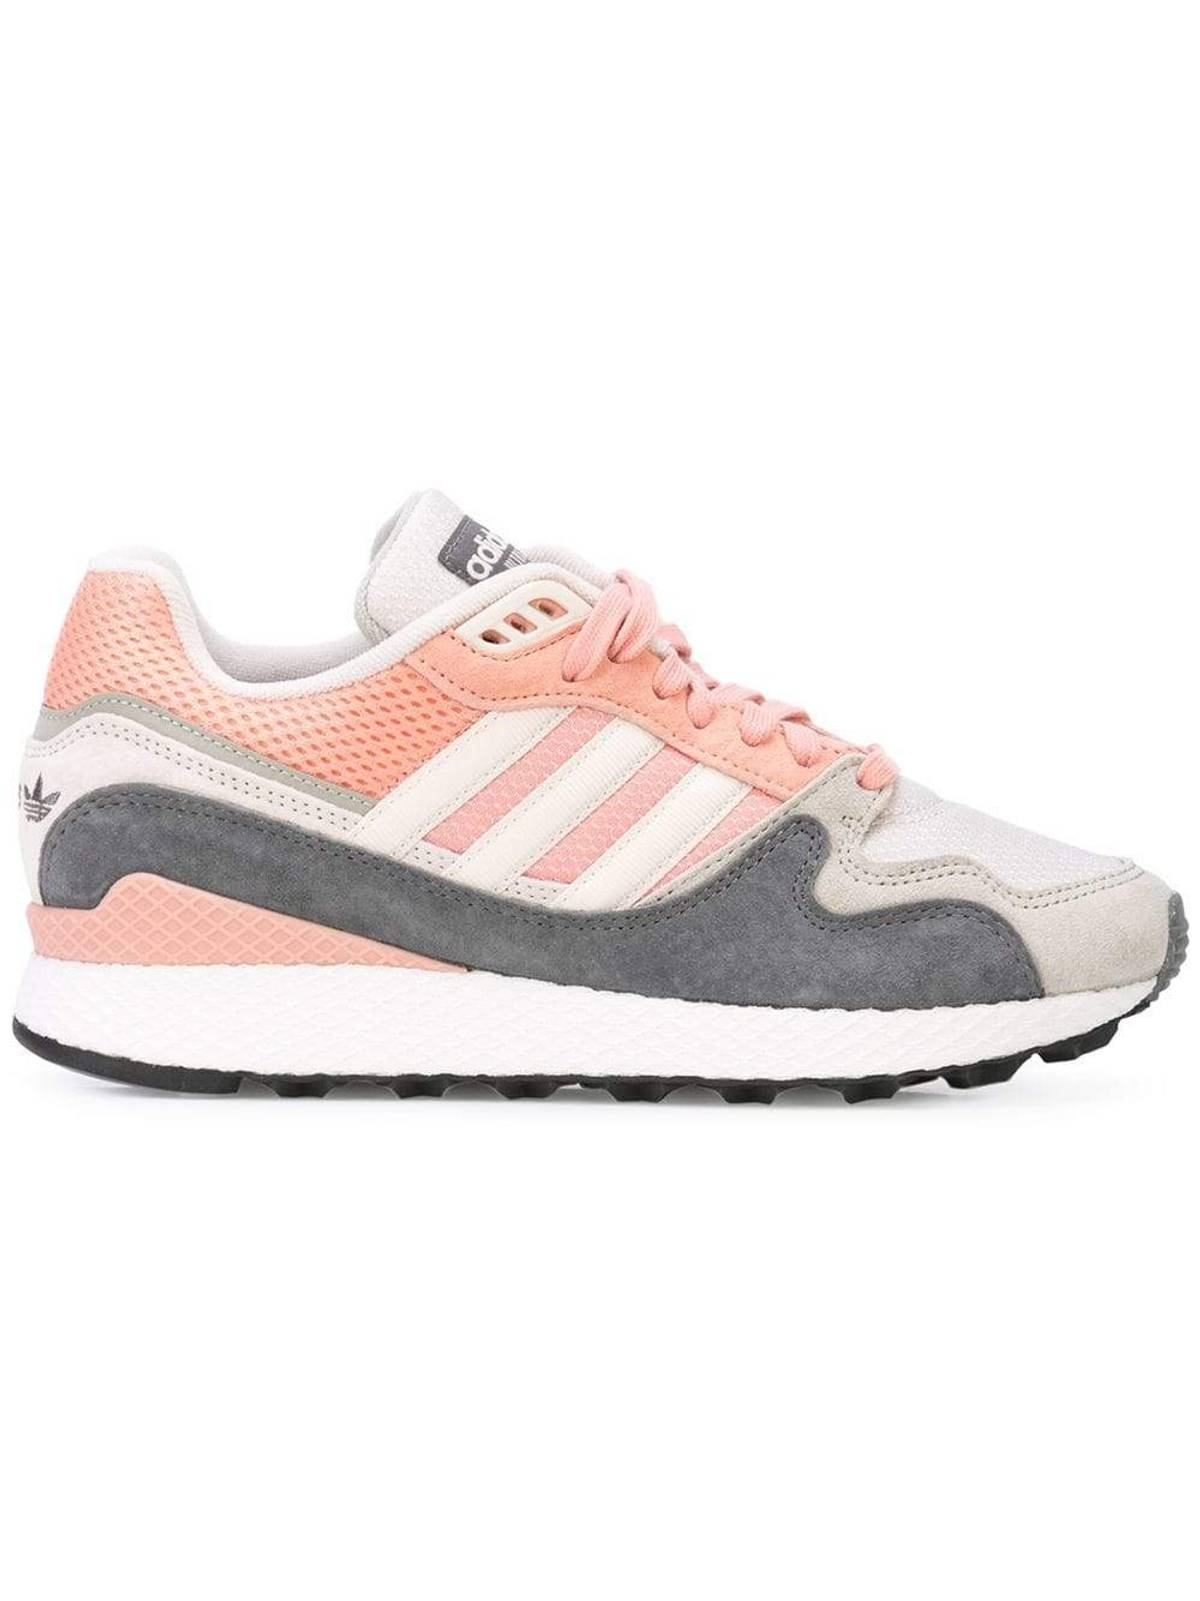 9f0e91a2ee76b Adidas Adidas Oregon Ultra Tech Sneakers Pink Grey Size 13 - Low-Top ...